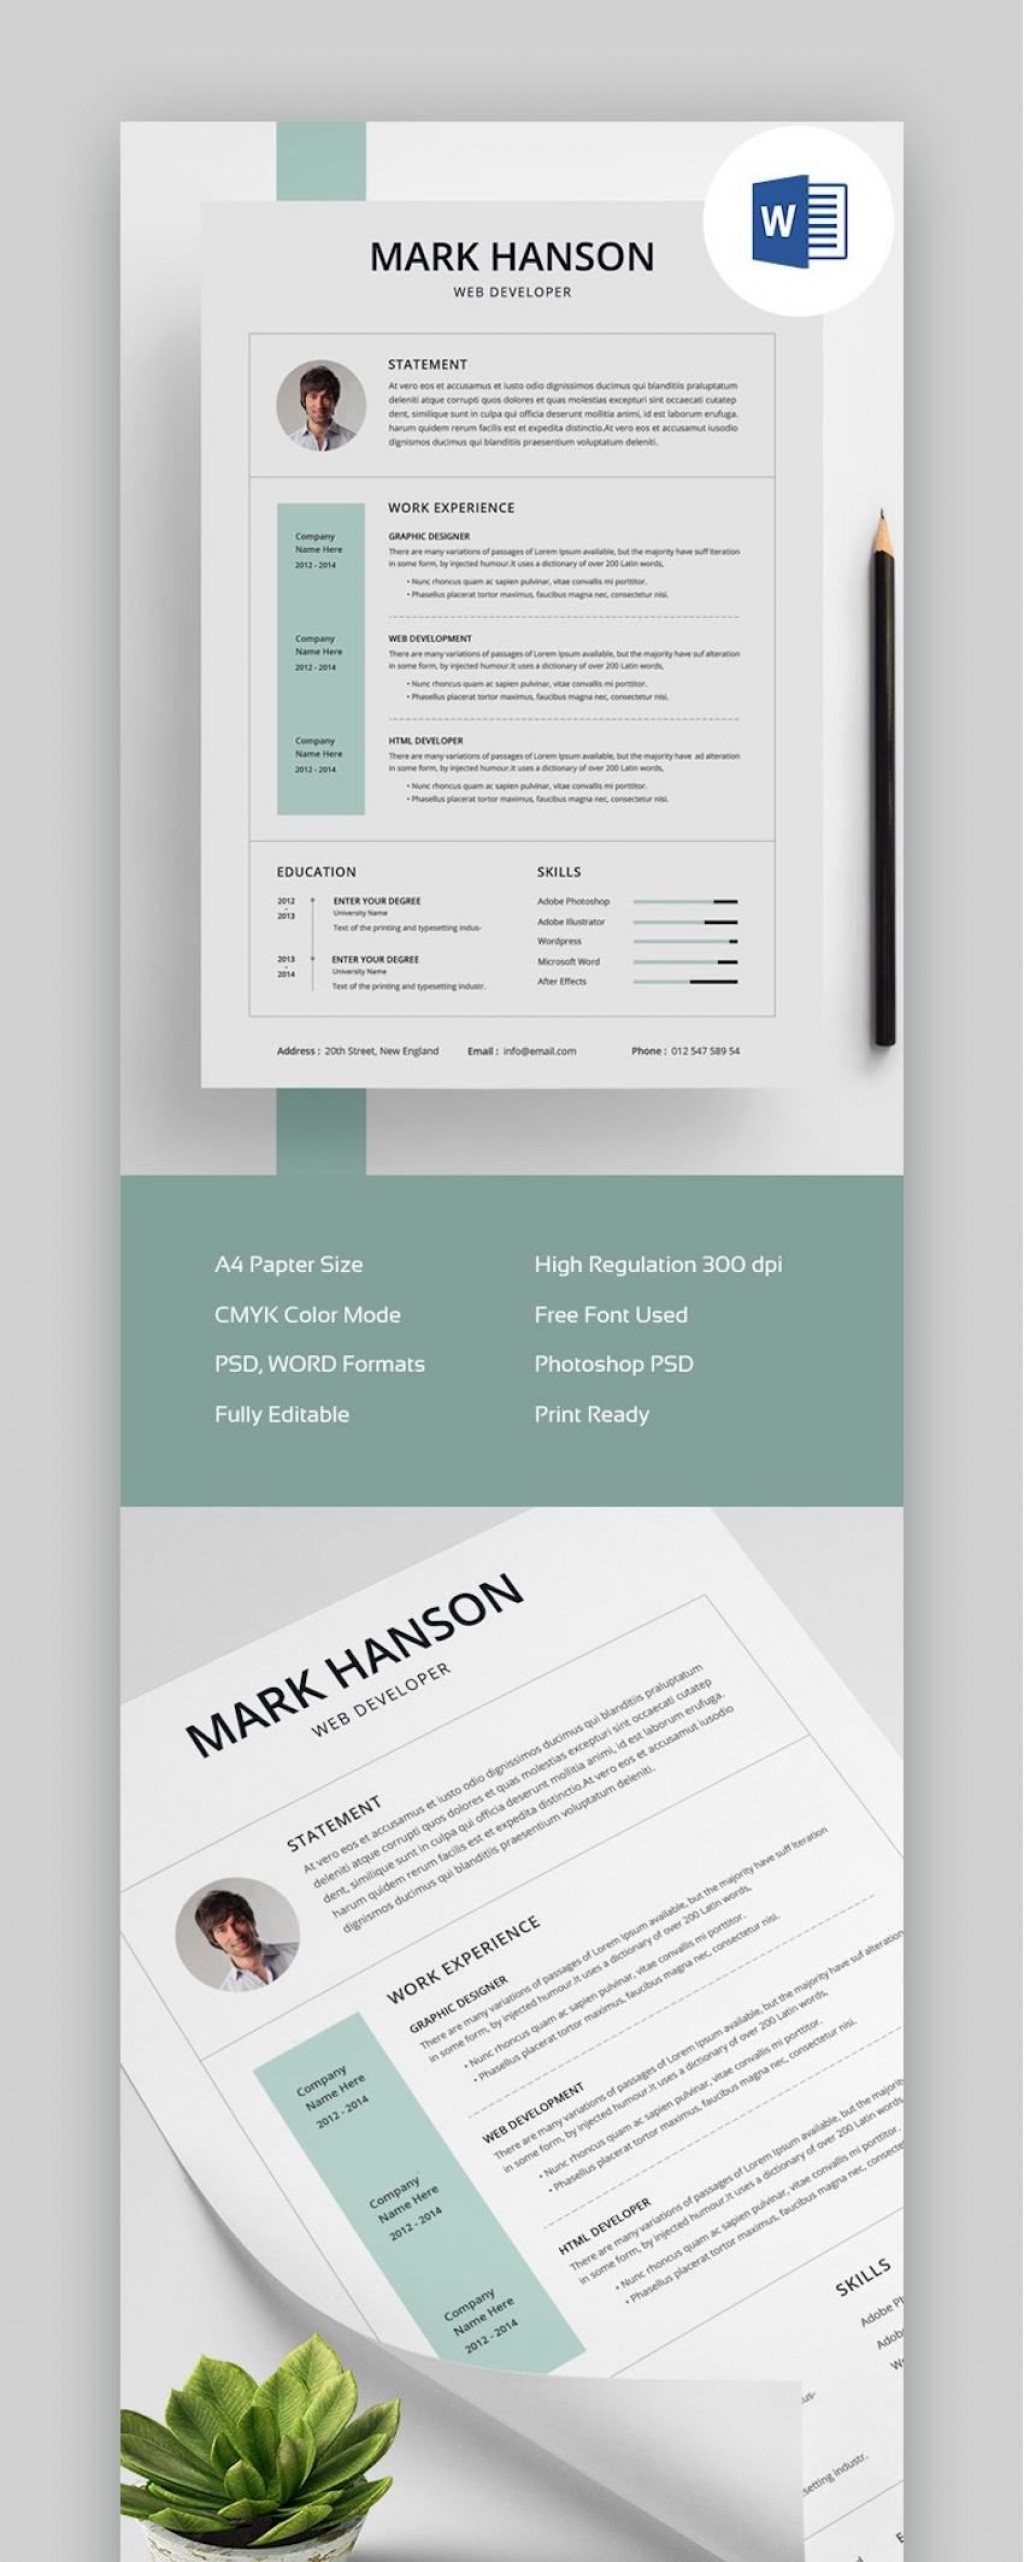 007 Stunning Creative Cv Template Photoshop Free Design Large